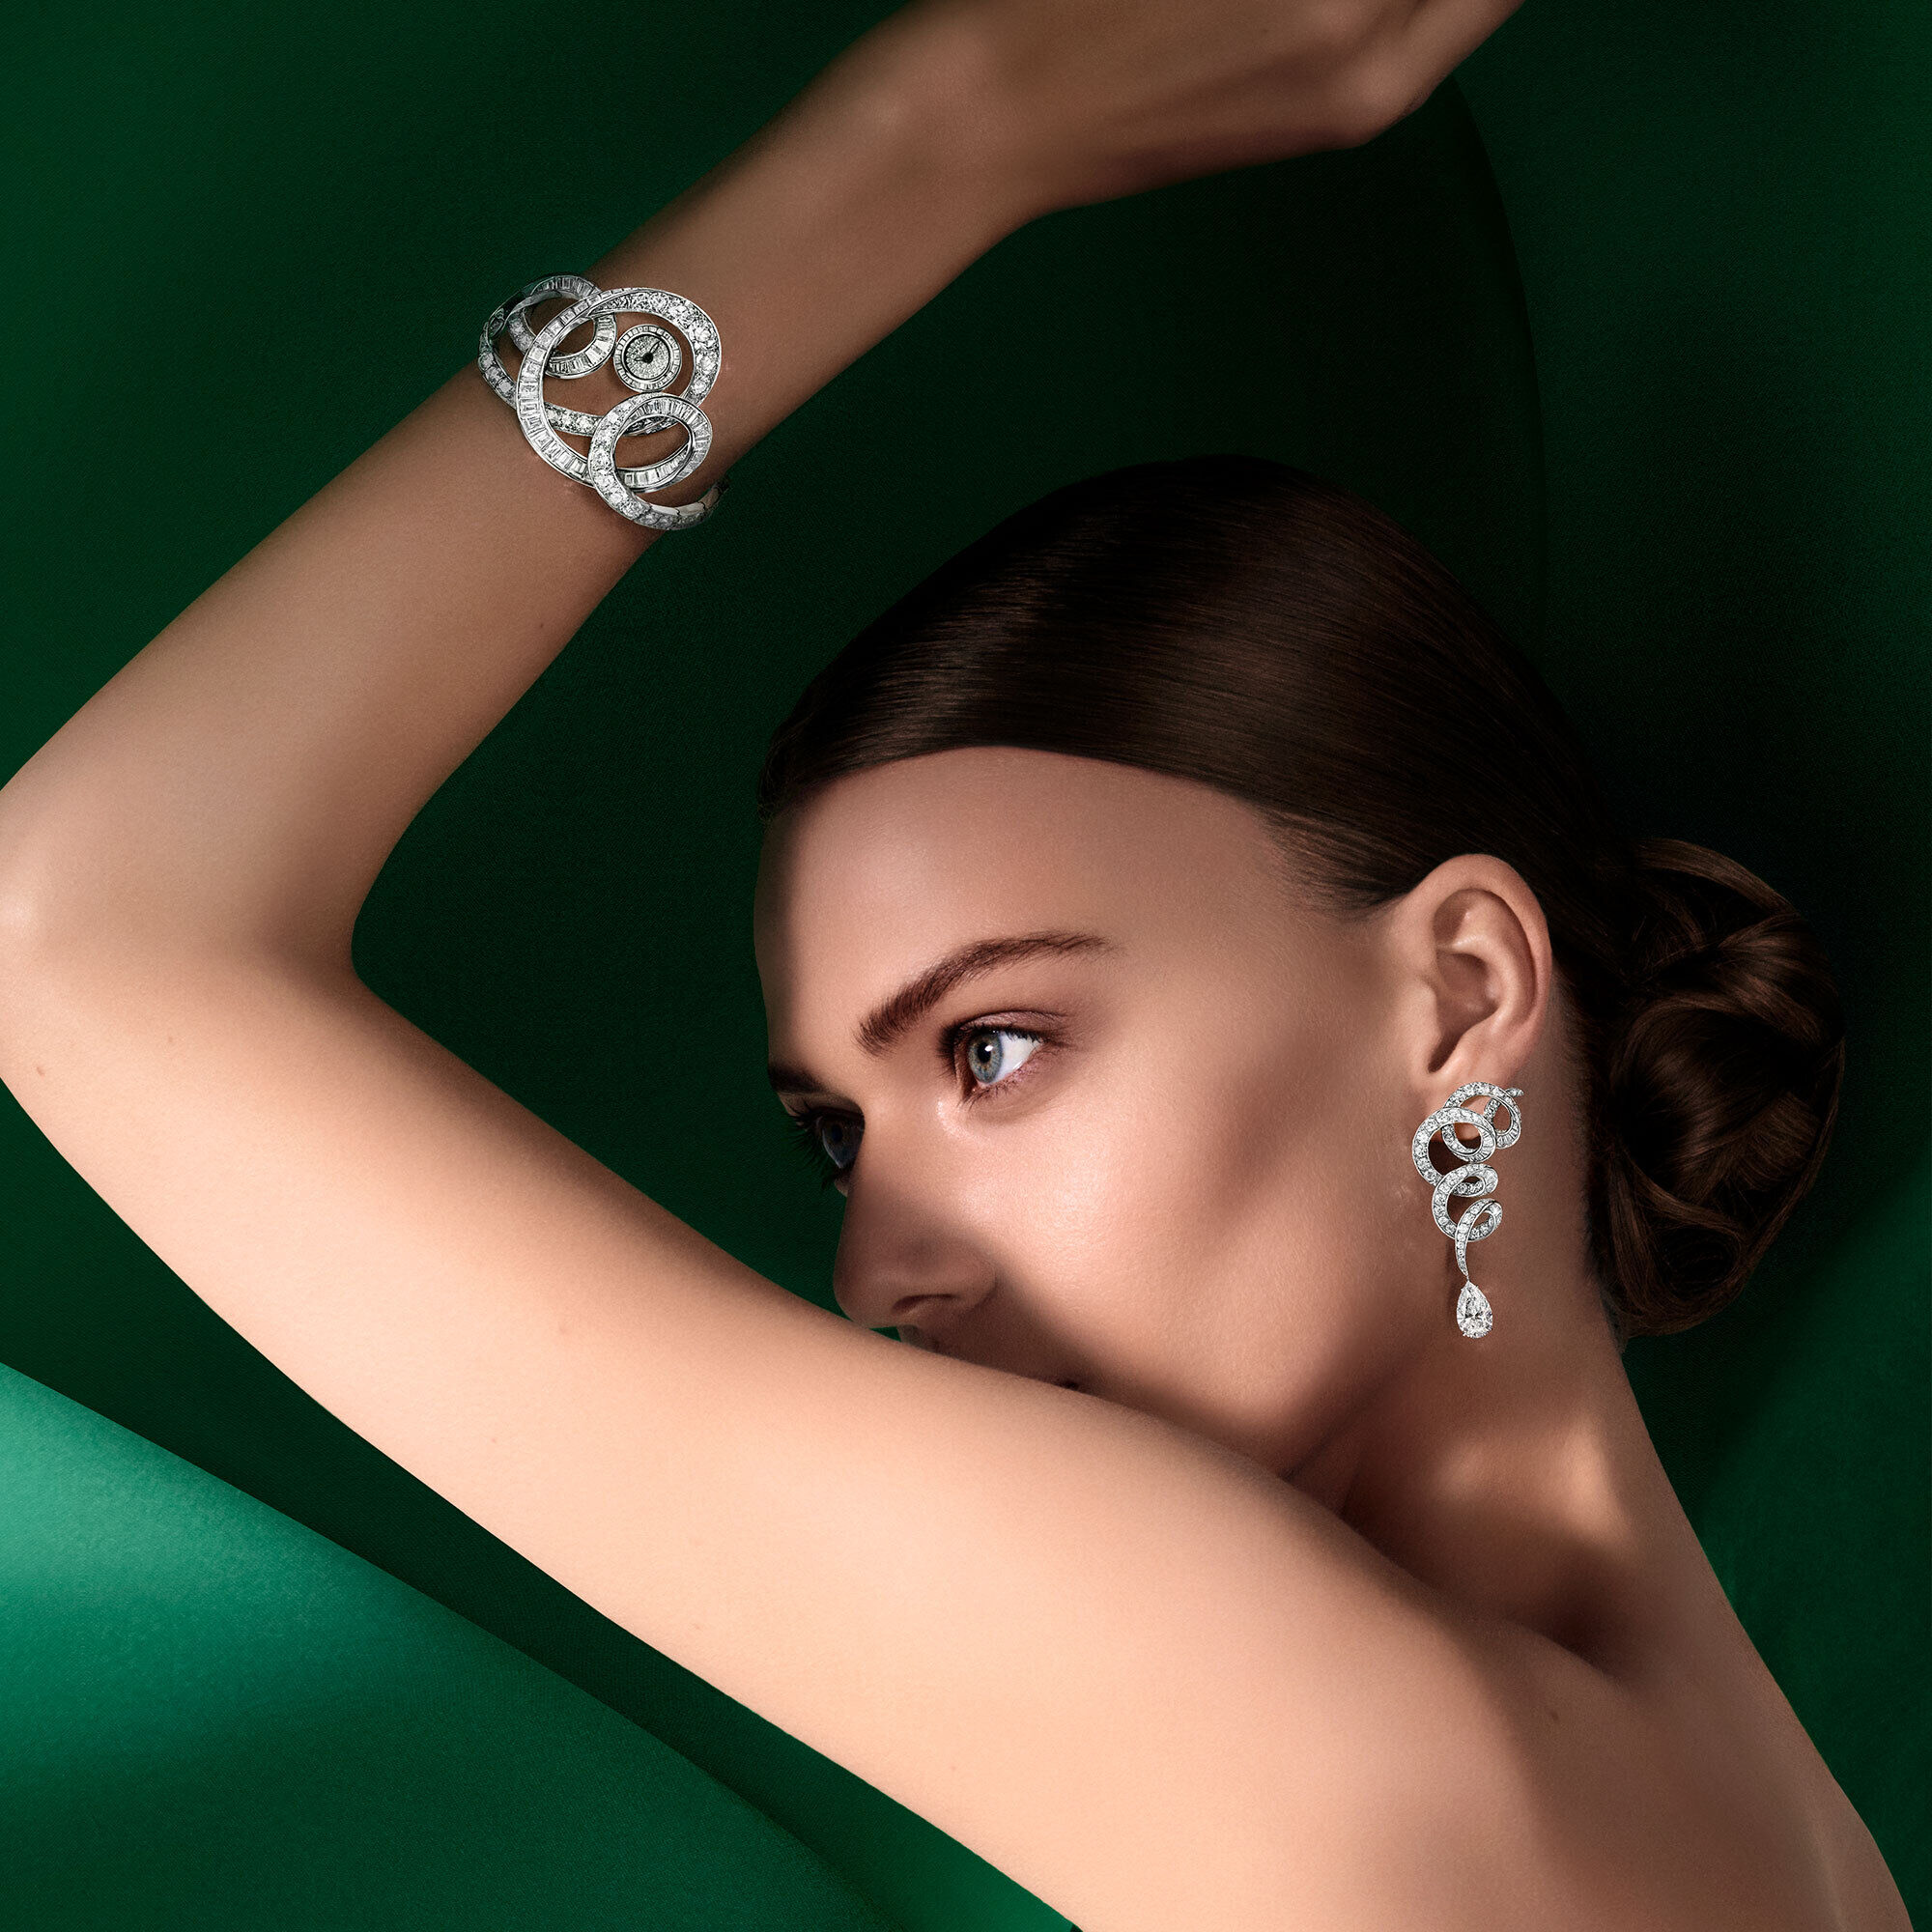 Model wears a diamond watch and earrings from the Inspired by Twombly jewellery collection from Graff